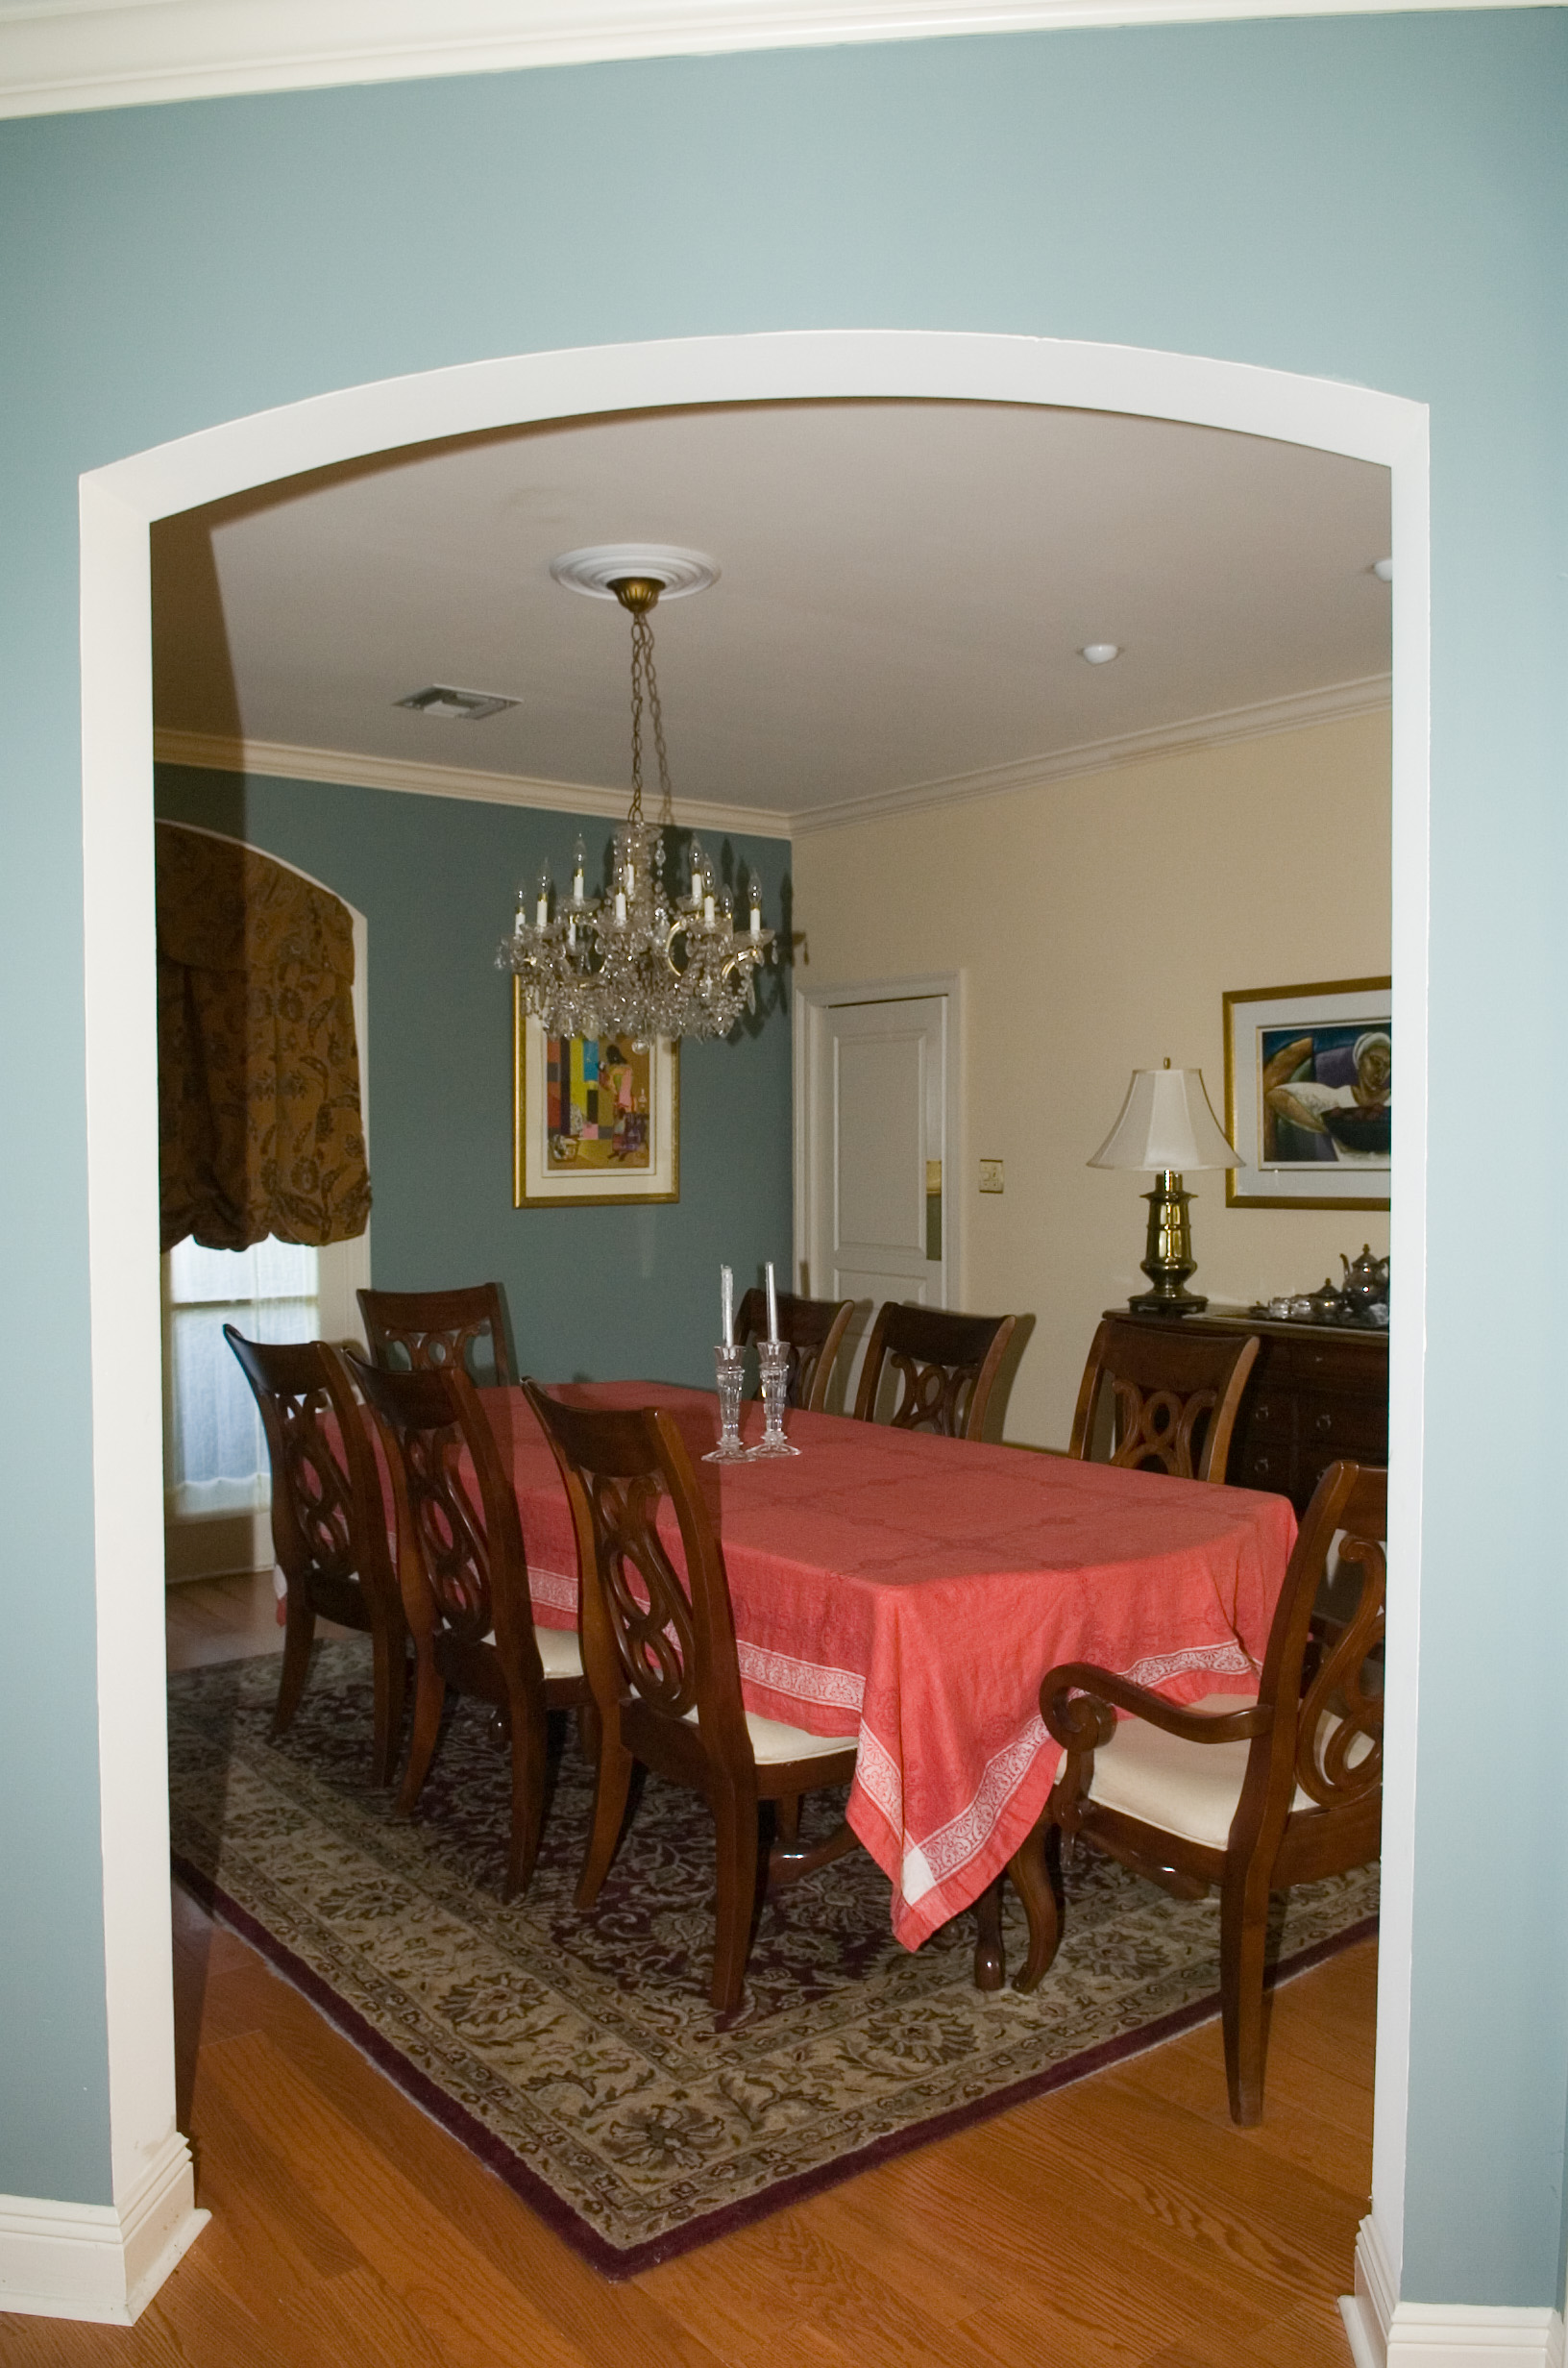 Turn Dining Room Into Readnig And Music Room